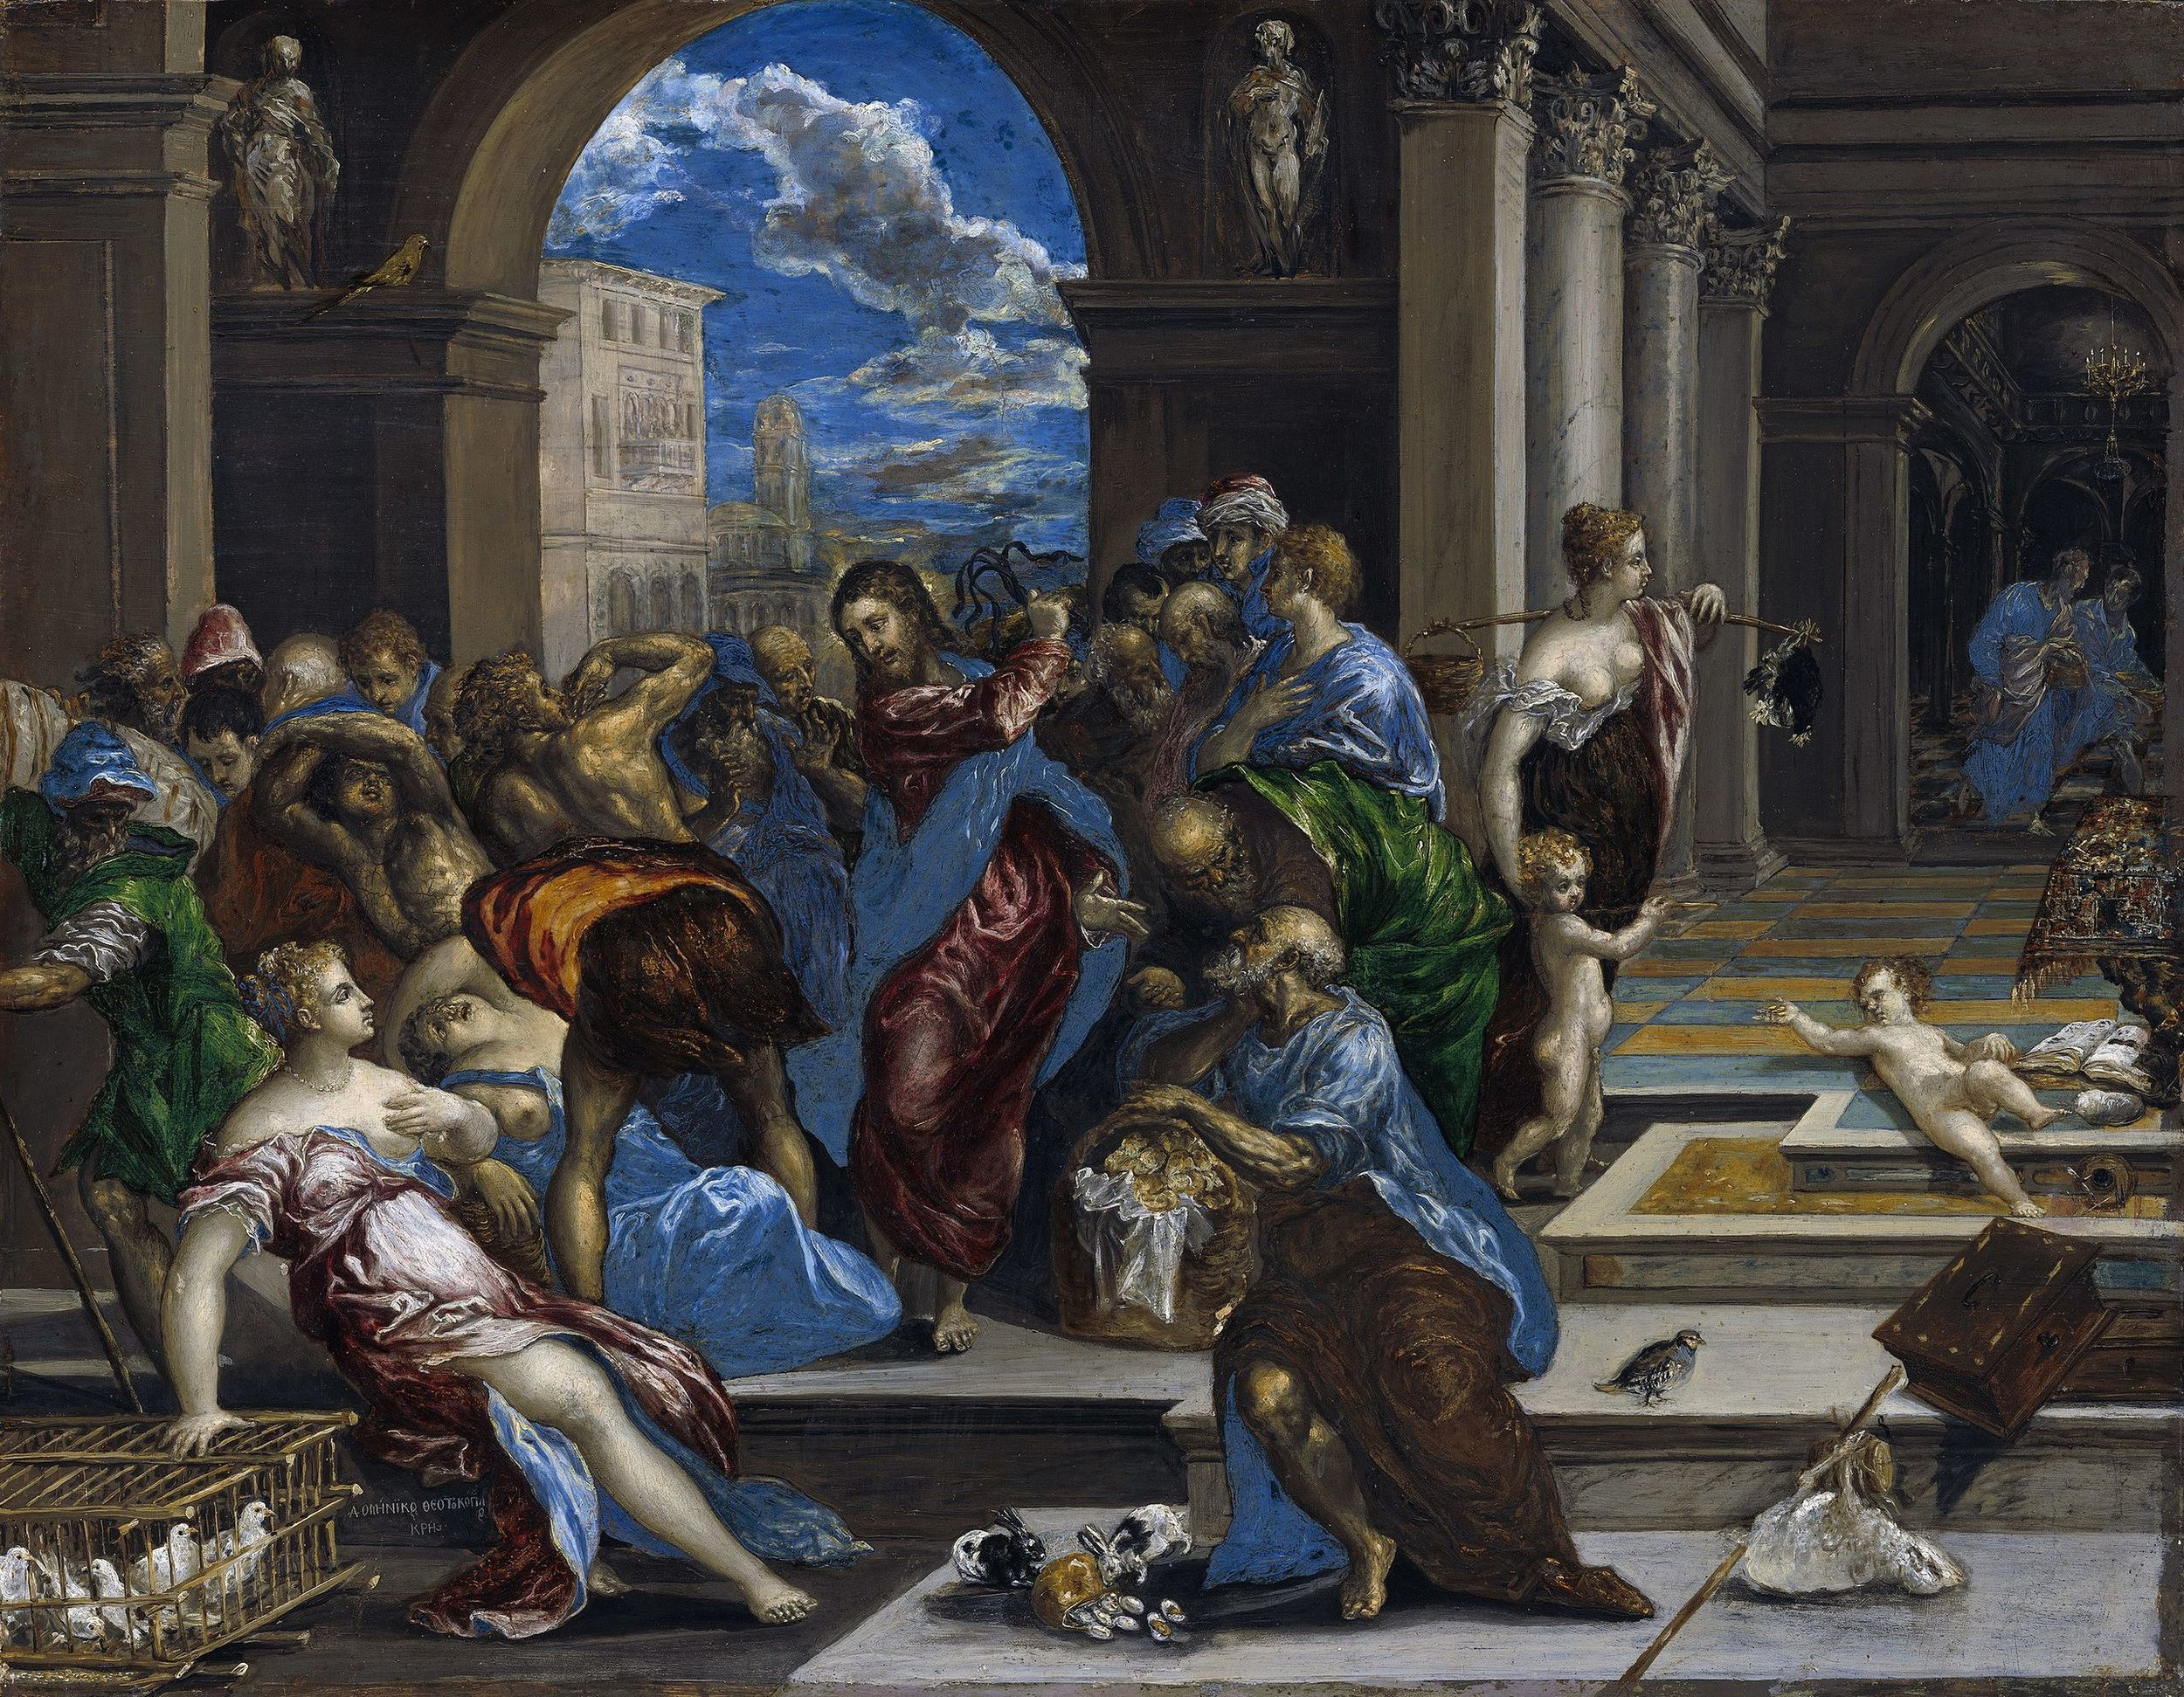 El Greco paints the Jesus who wasn't concerned with being liked.